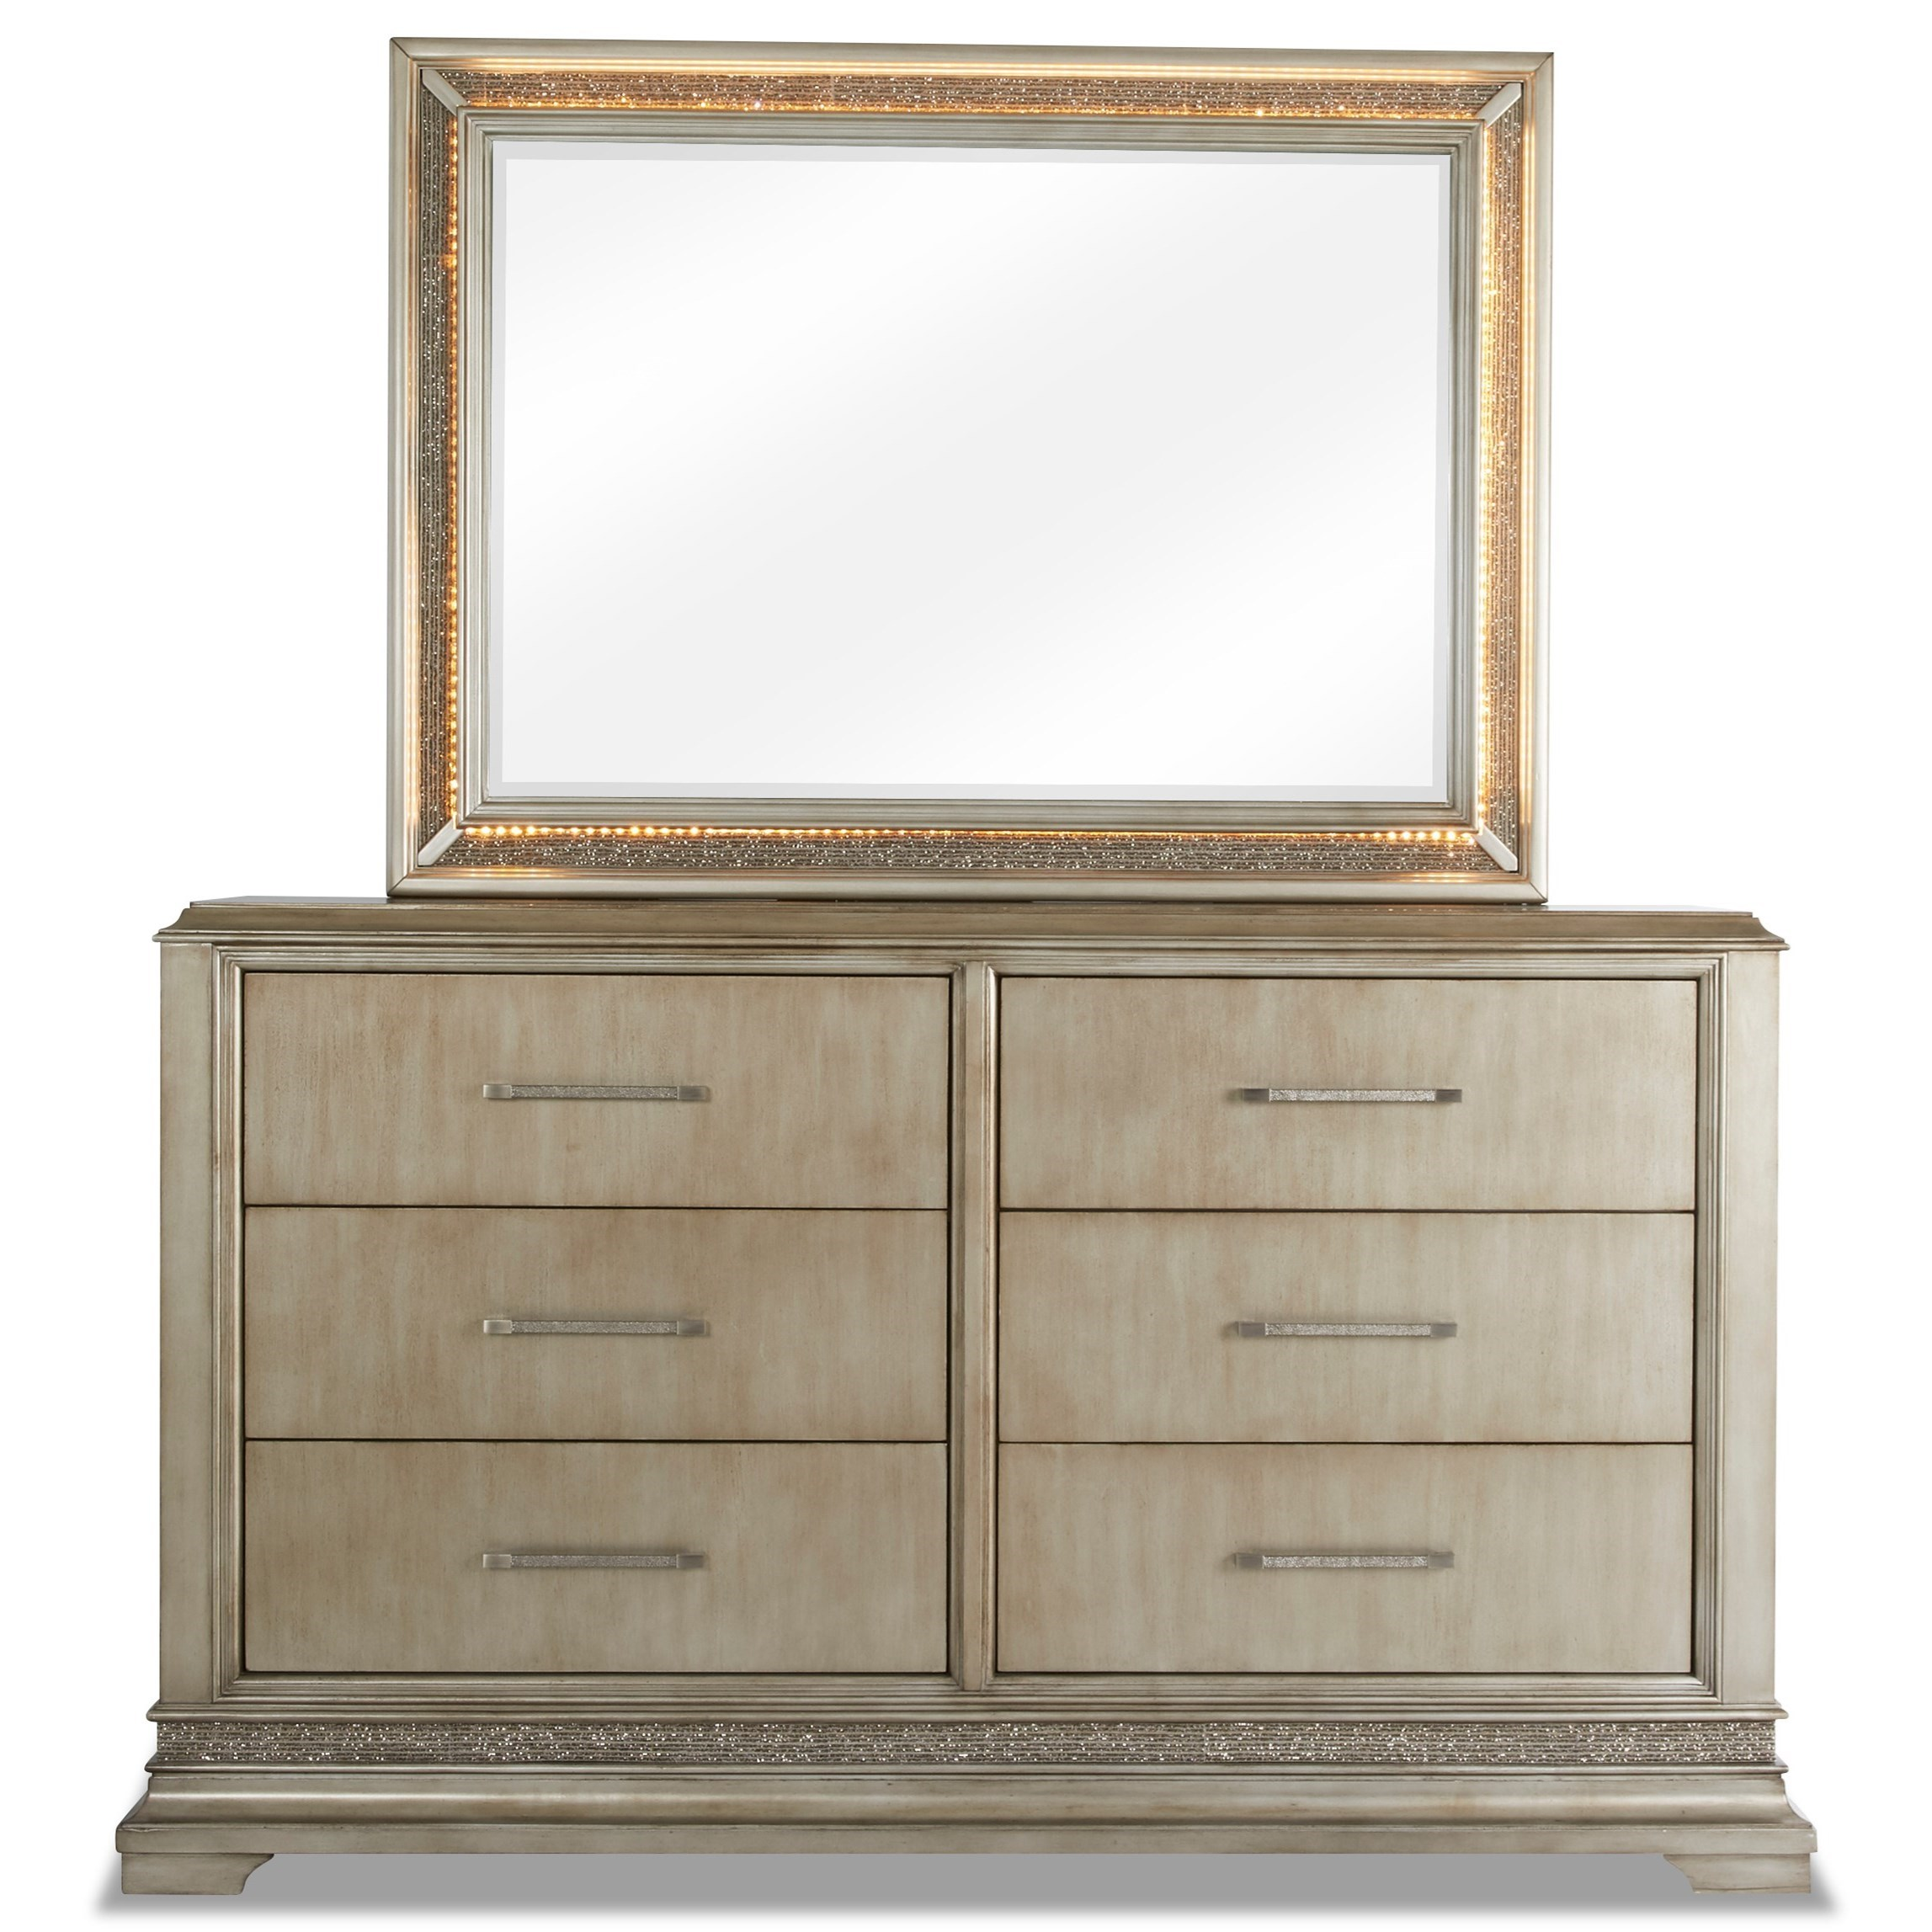 Sophia Dresser and Mirror by Klaussner International at Northeast Factory Direct